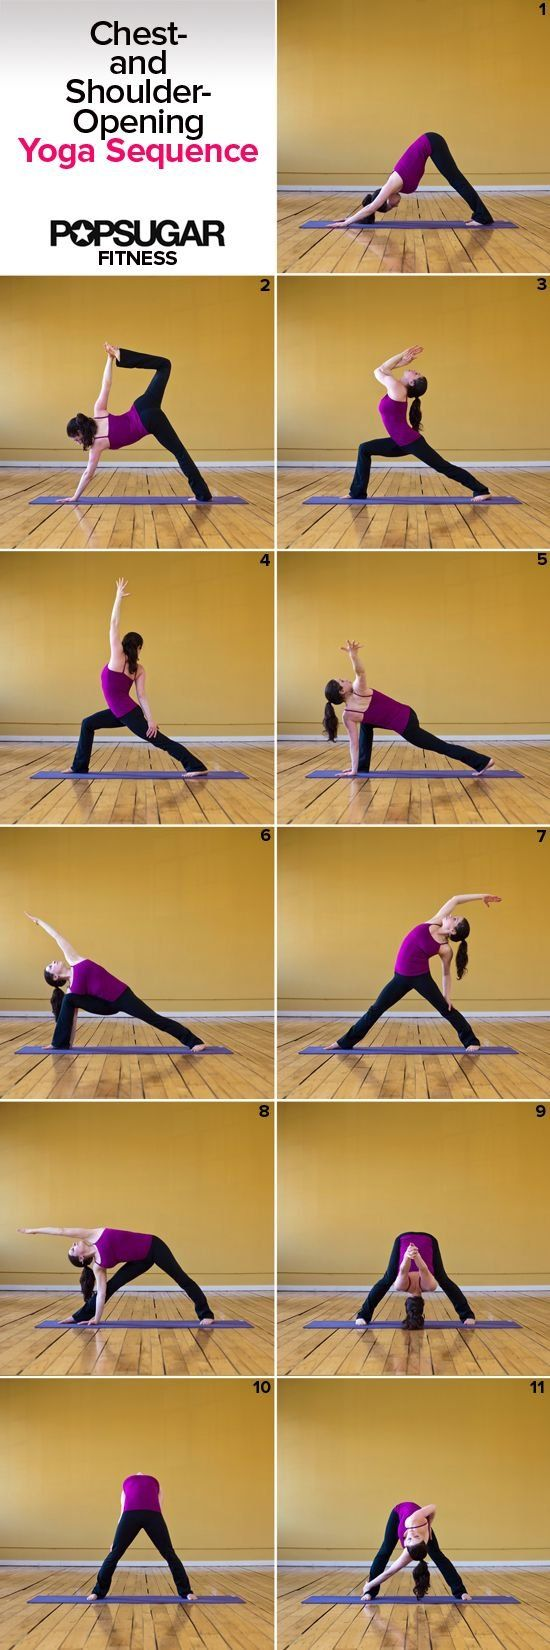 Yoga to Open Up Tight and Tense Shoulders - What do push-ups, cycling, and sitting hunched over a computer all have in common? Tight and tense shoulders. Aside from scheduling an appointment with a massage therapist, you can hop on a mat and show this area some love with this chest- and shoulder-opening yoga sequence. Move through all 11 postures on the right side, and then repeat on the left.